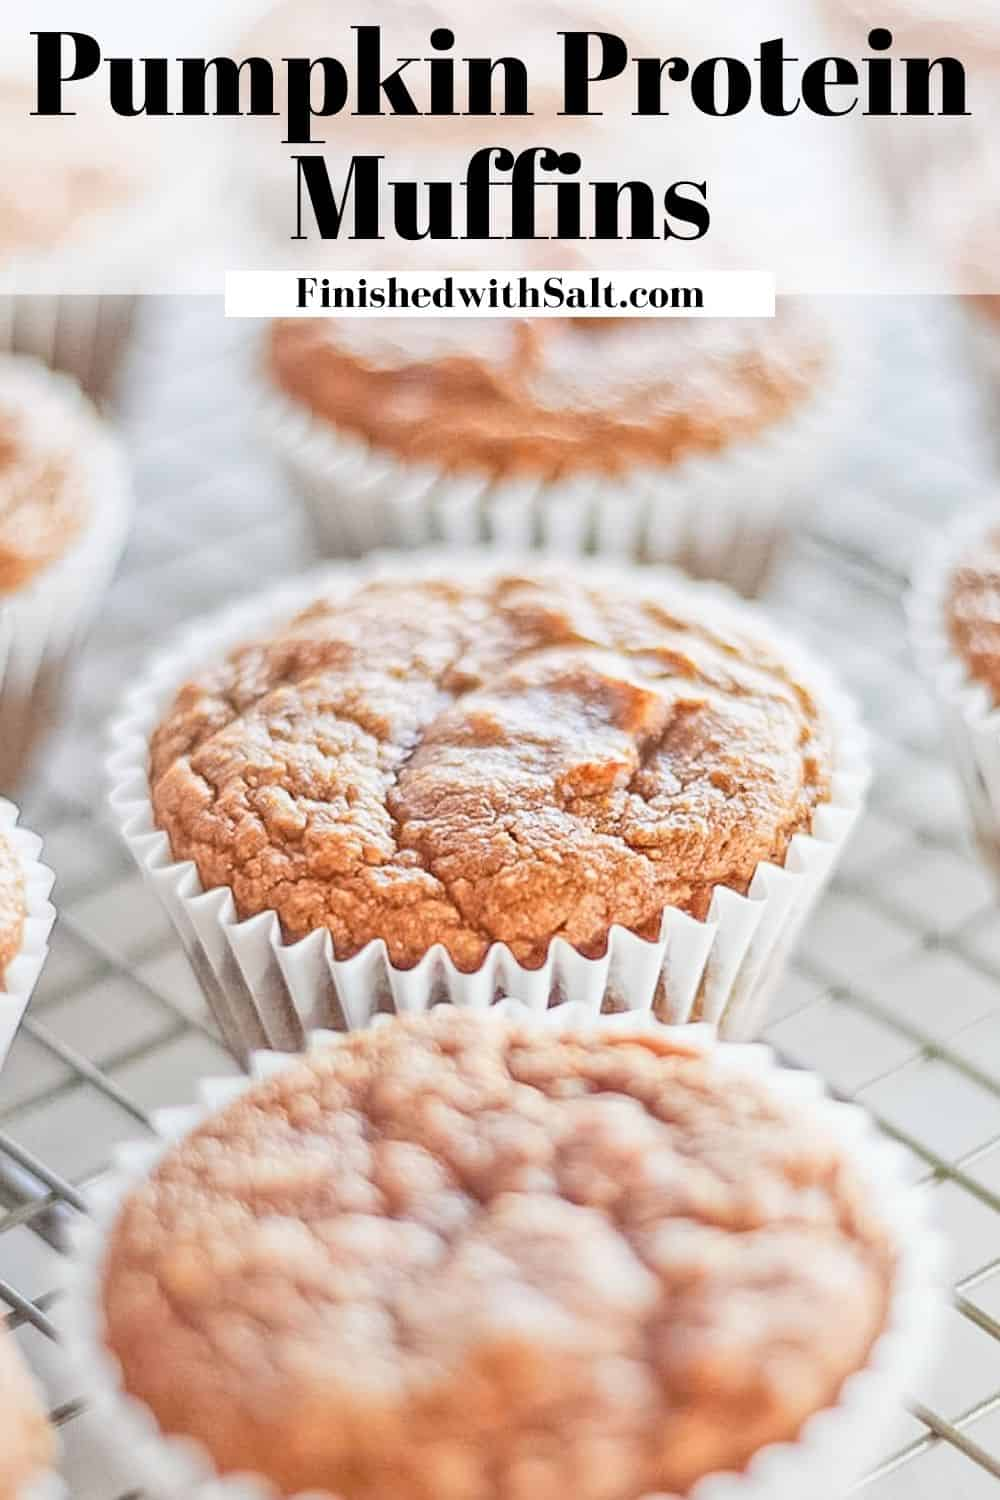 Muffins cooling on a metal rack with recipe title.